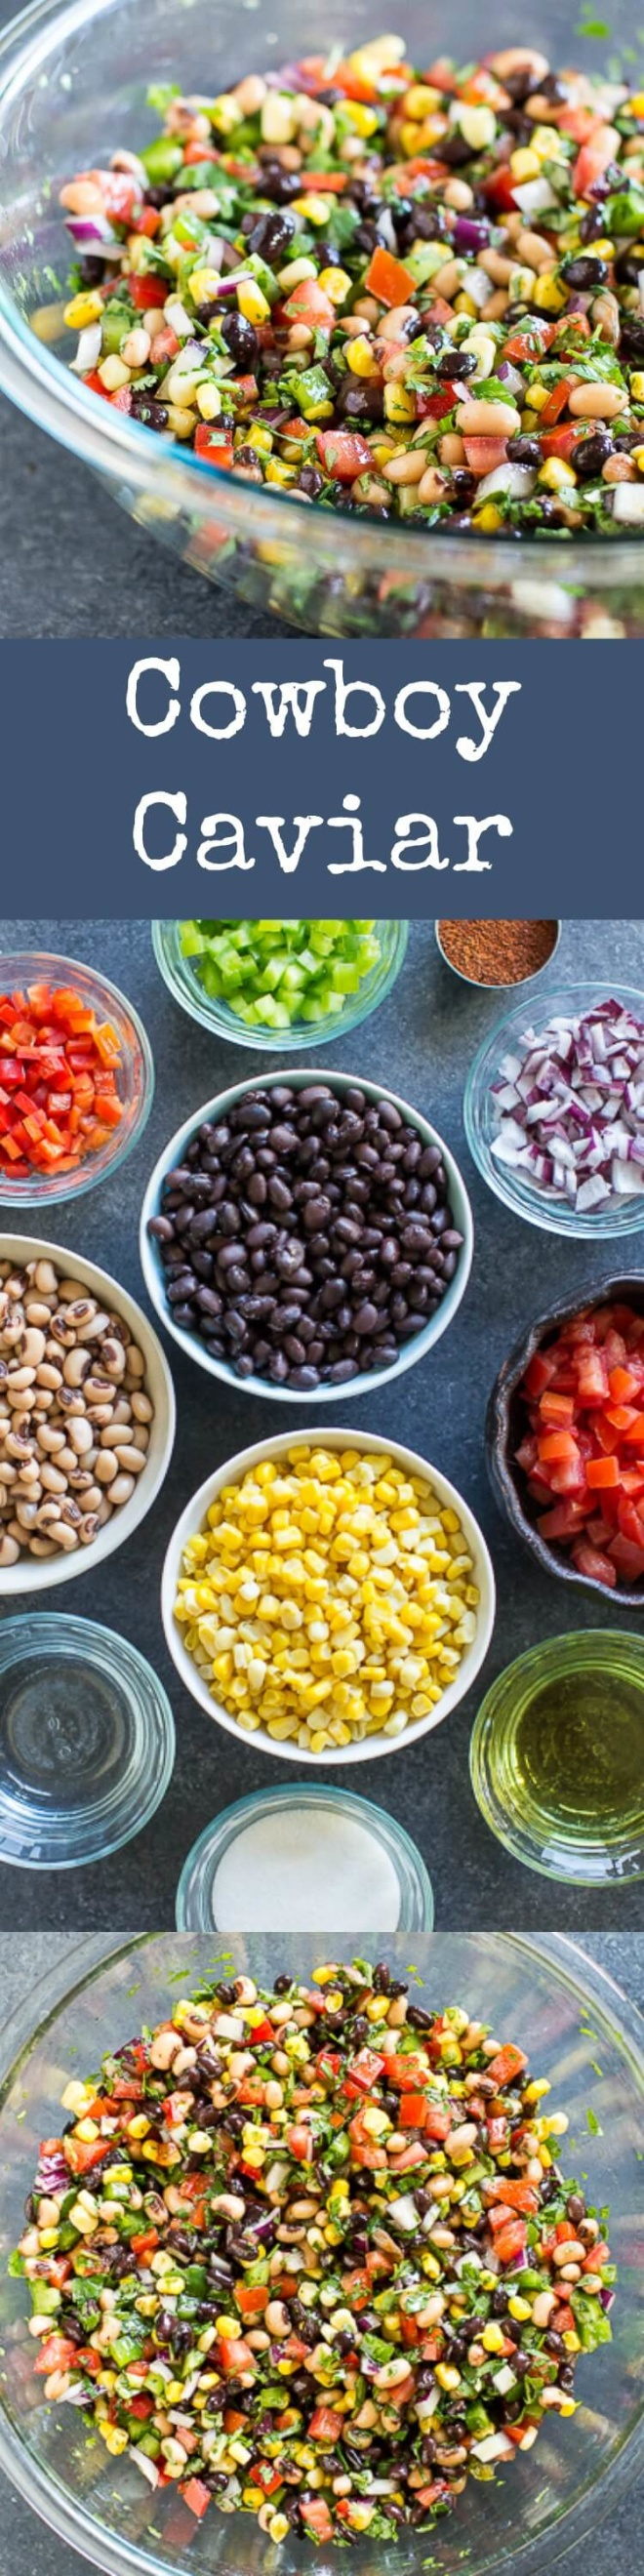 Cowboy-Caviar-is-packed-with-colorful-fresh-ingredients-that-also-happen-to-be-healthy-Makes-a-gre-wallpaper-wp3404244